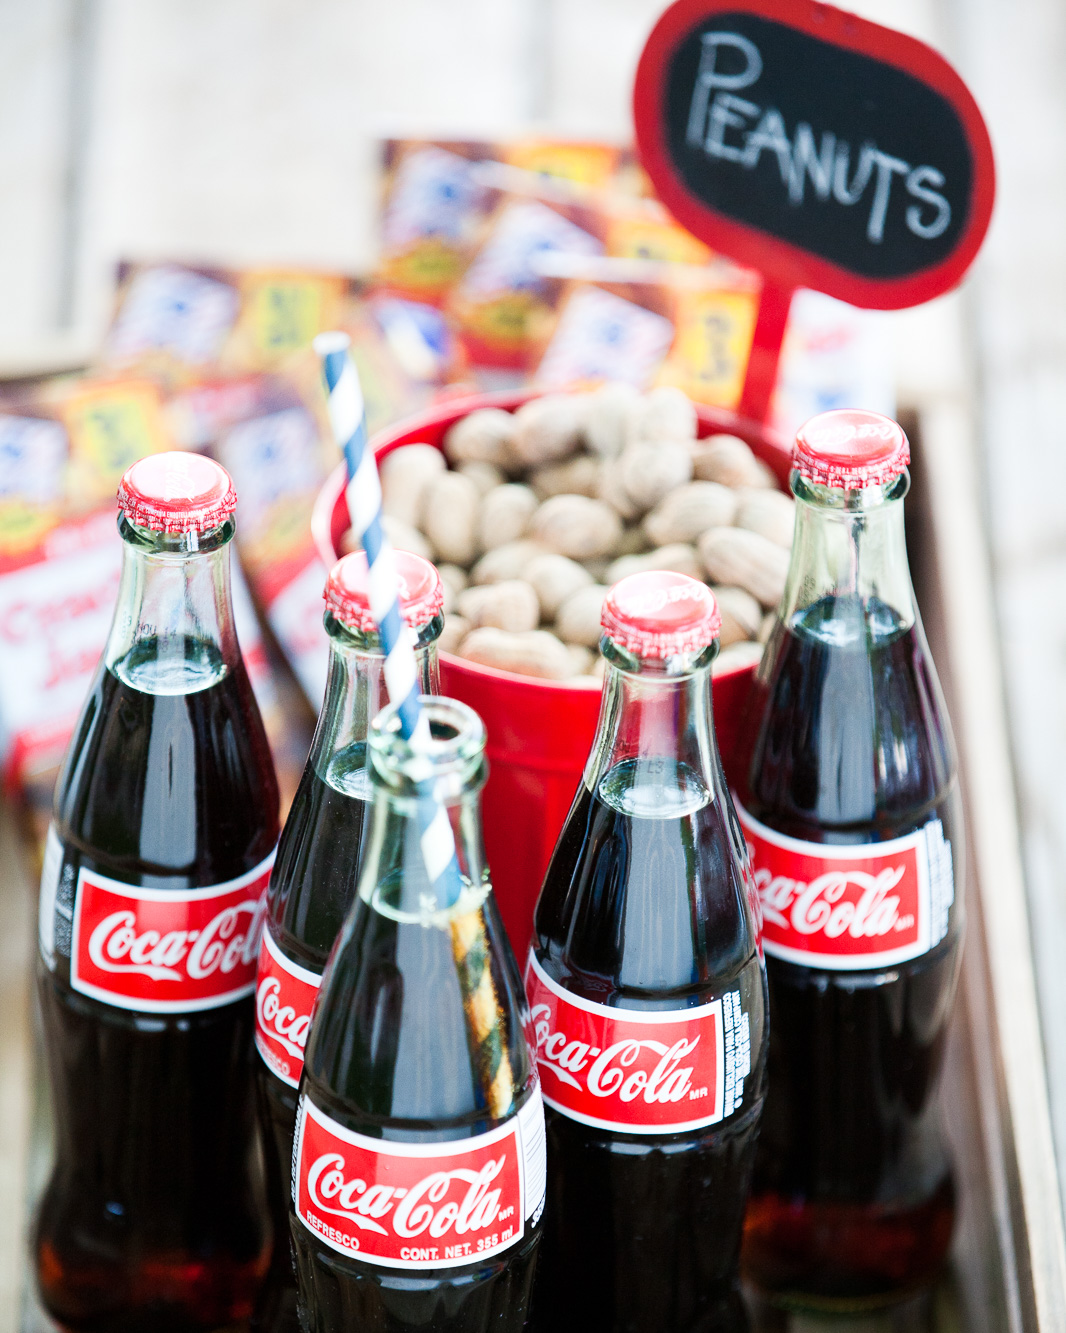 A tray of old fashioned coca-cola bottles, peanuts and crackerjack. Take me out to the ball game.